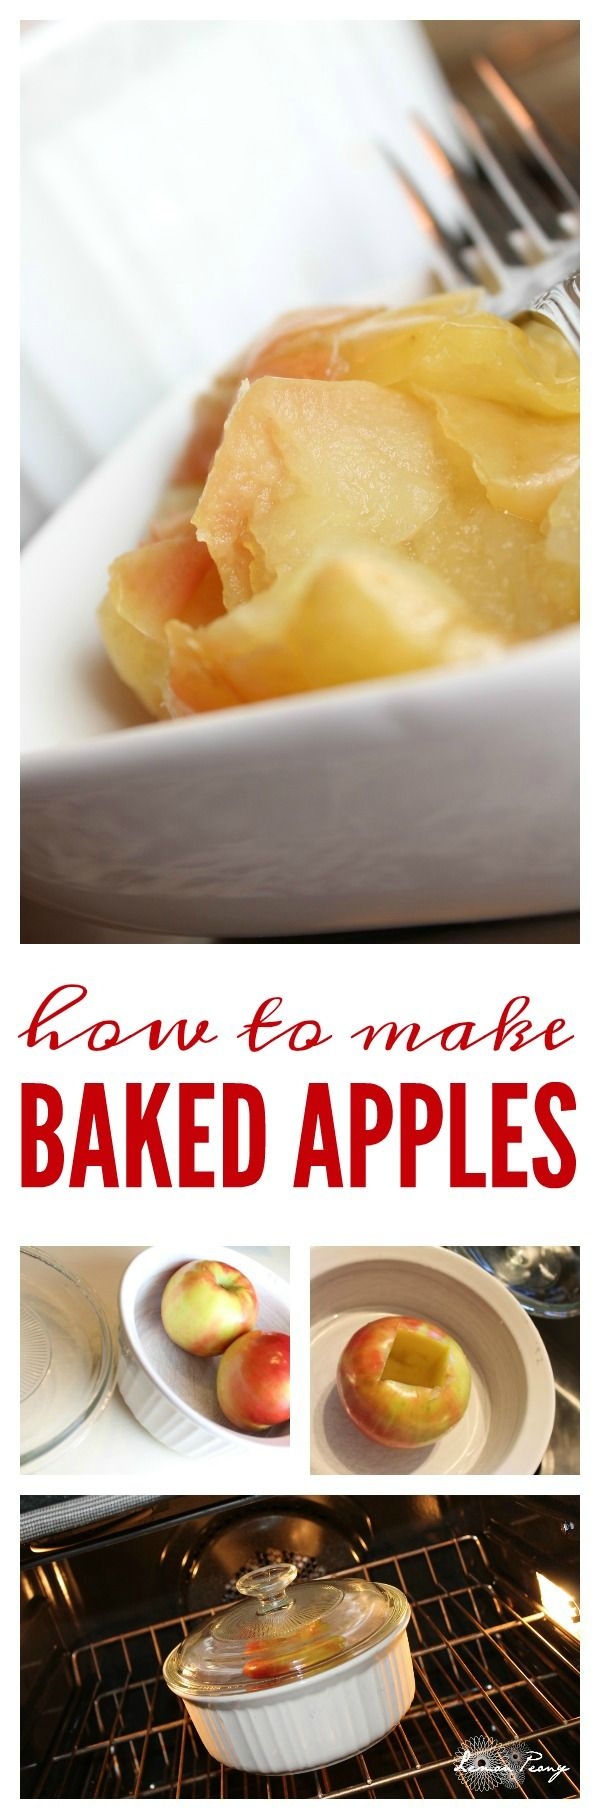 How to stay healthy while planning a wedding! One of my favorite ways is by making baked apples! Get this recipe and 5 more healthy hacks during this busy season of life! http://lemonpeony.com/how-to-stay-healthy-while-planning-a-wedding/ #V8Mornings #ad @v8juices